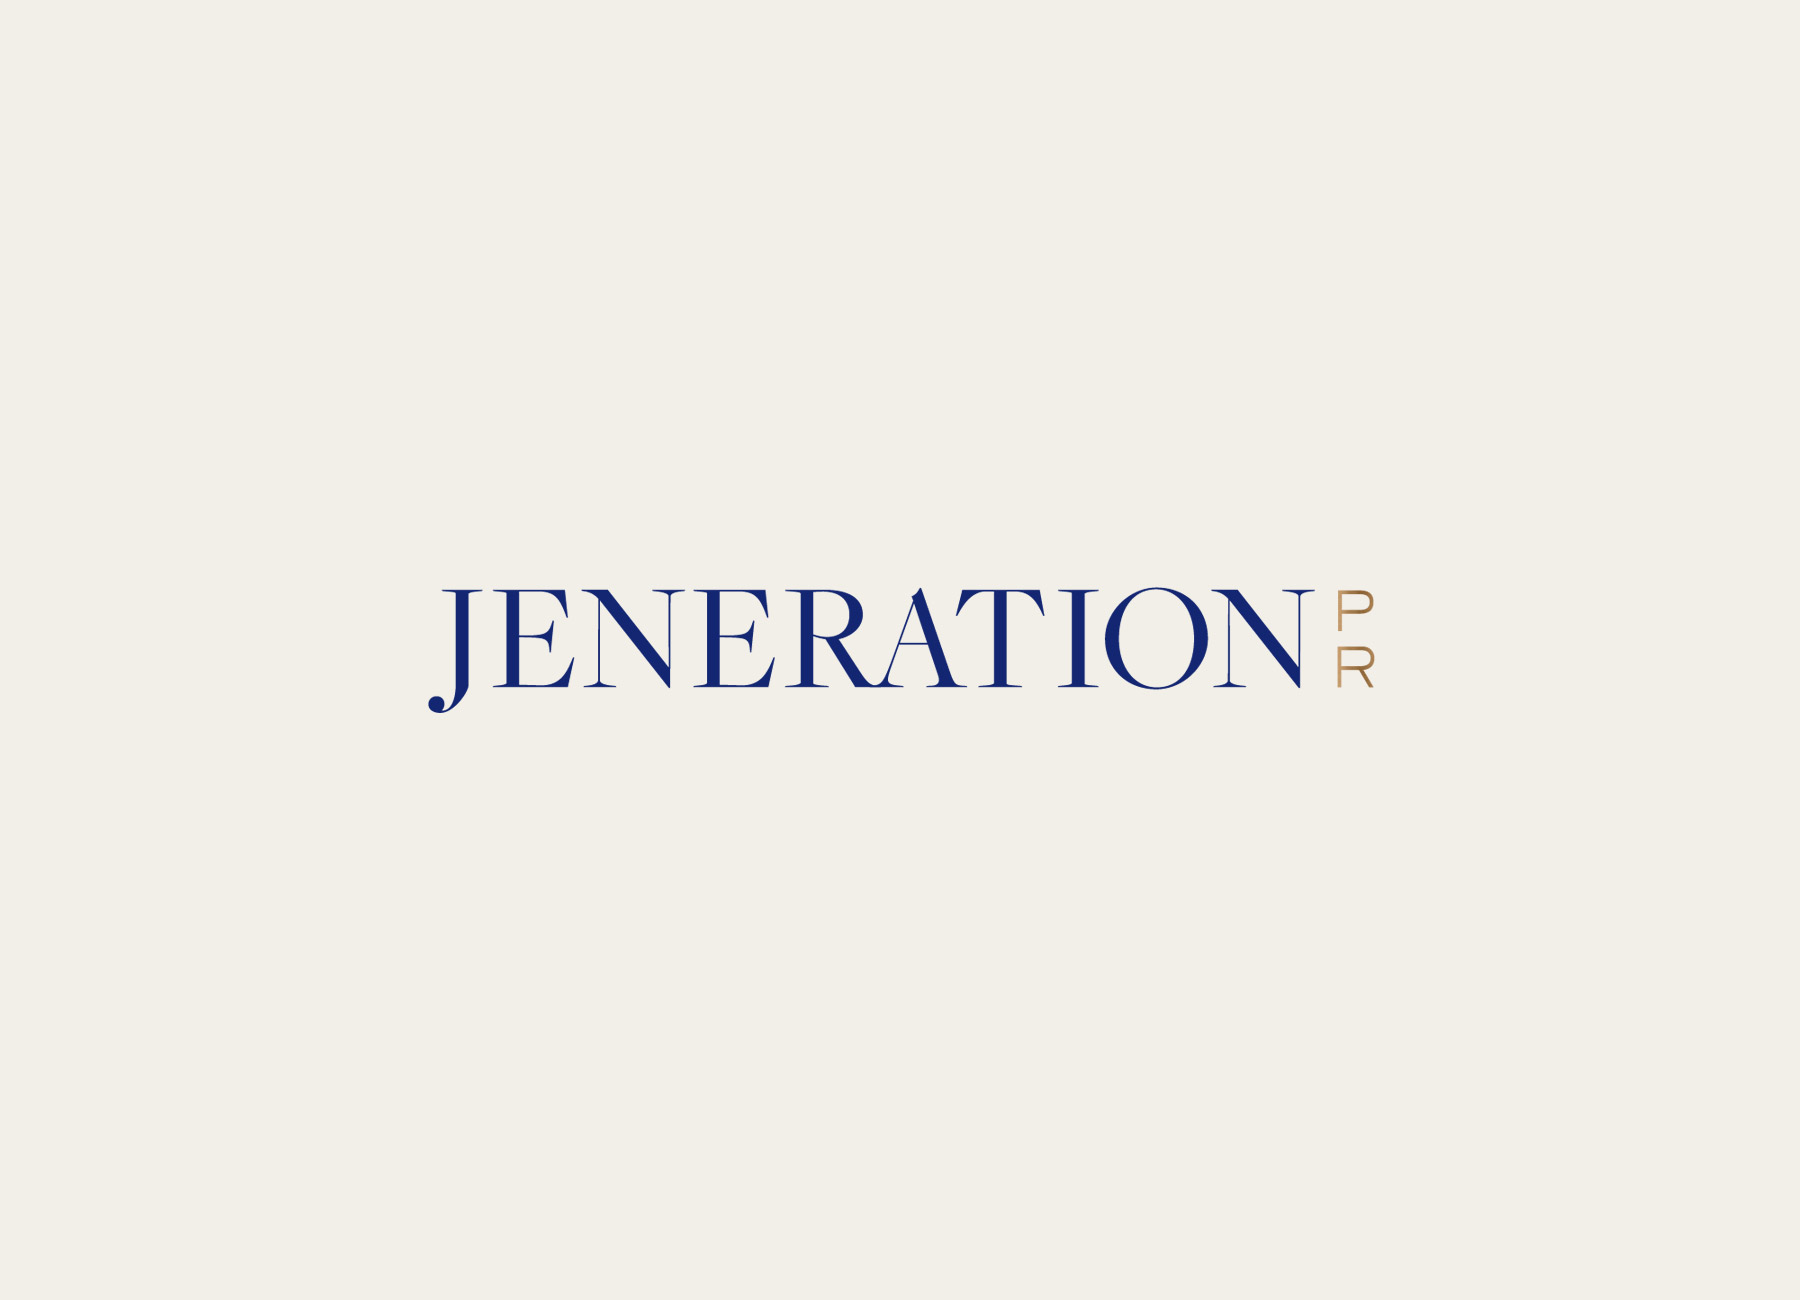 WE ARE BRANCH | JENERATION PR